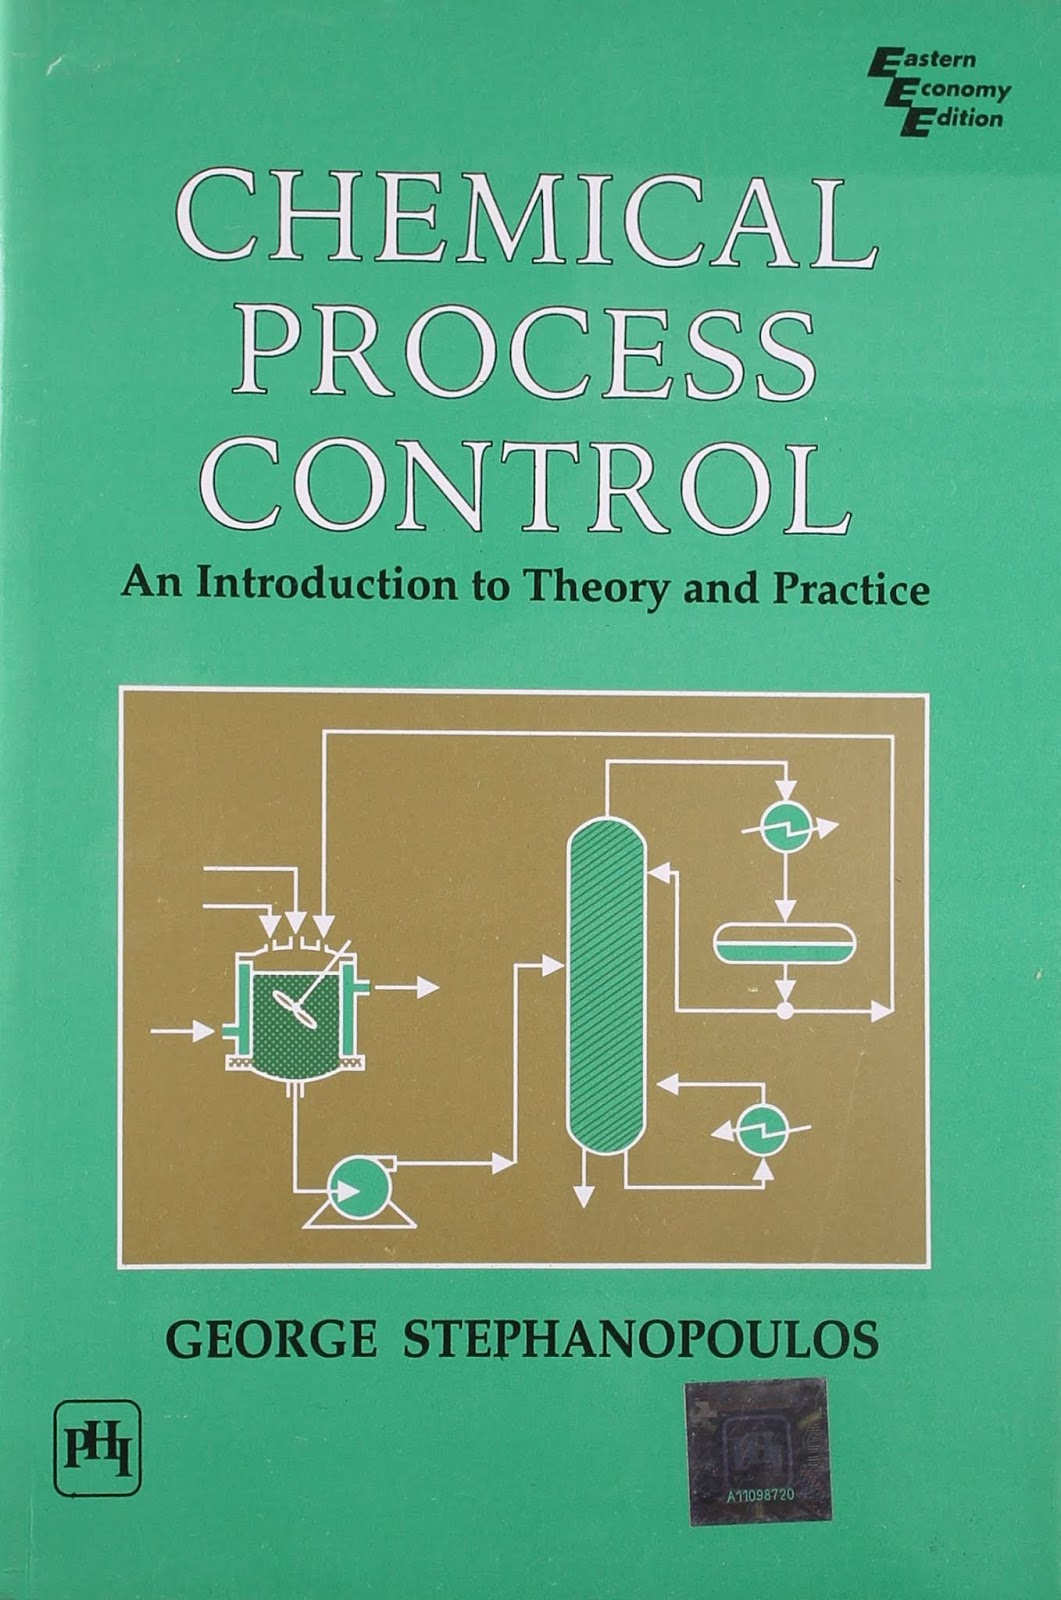 CHEMICAL ENGINEERING books pdf: Chemical Process Control